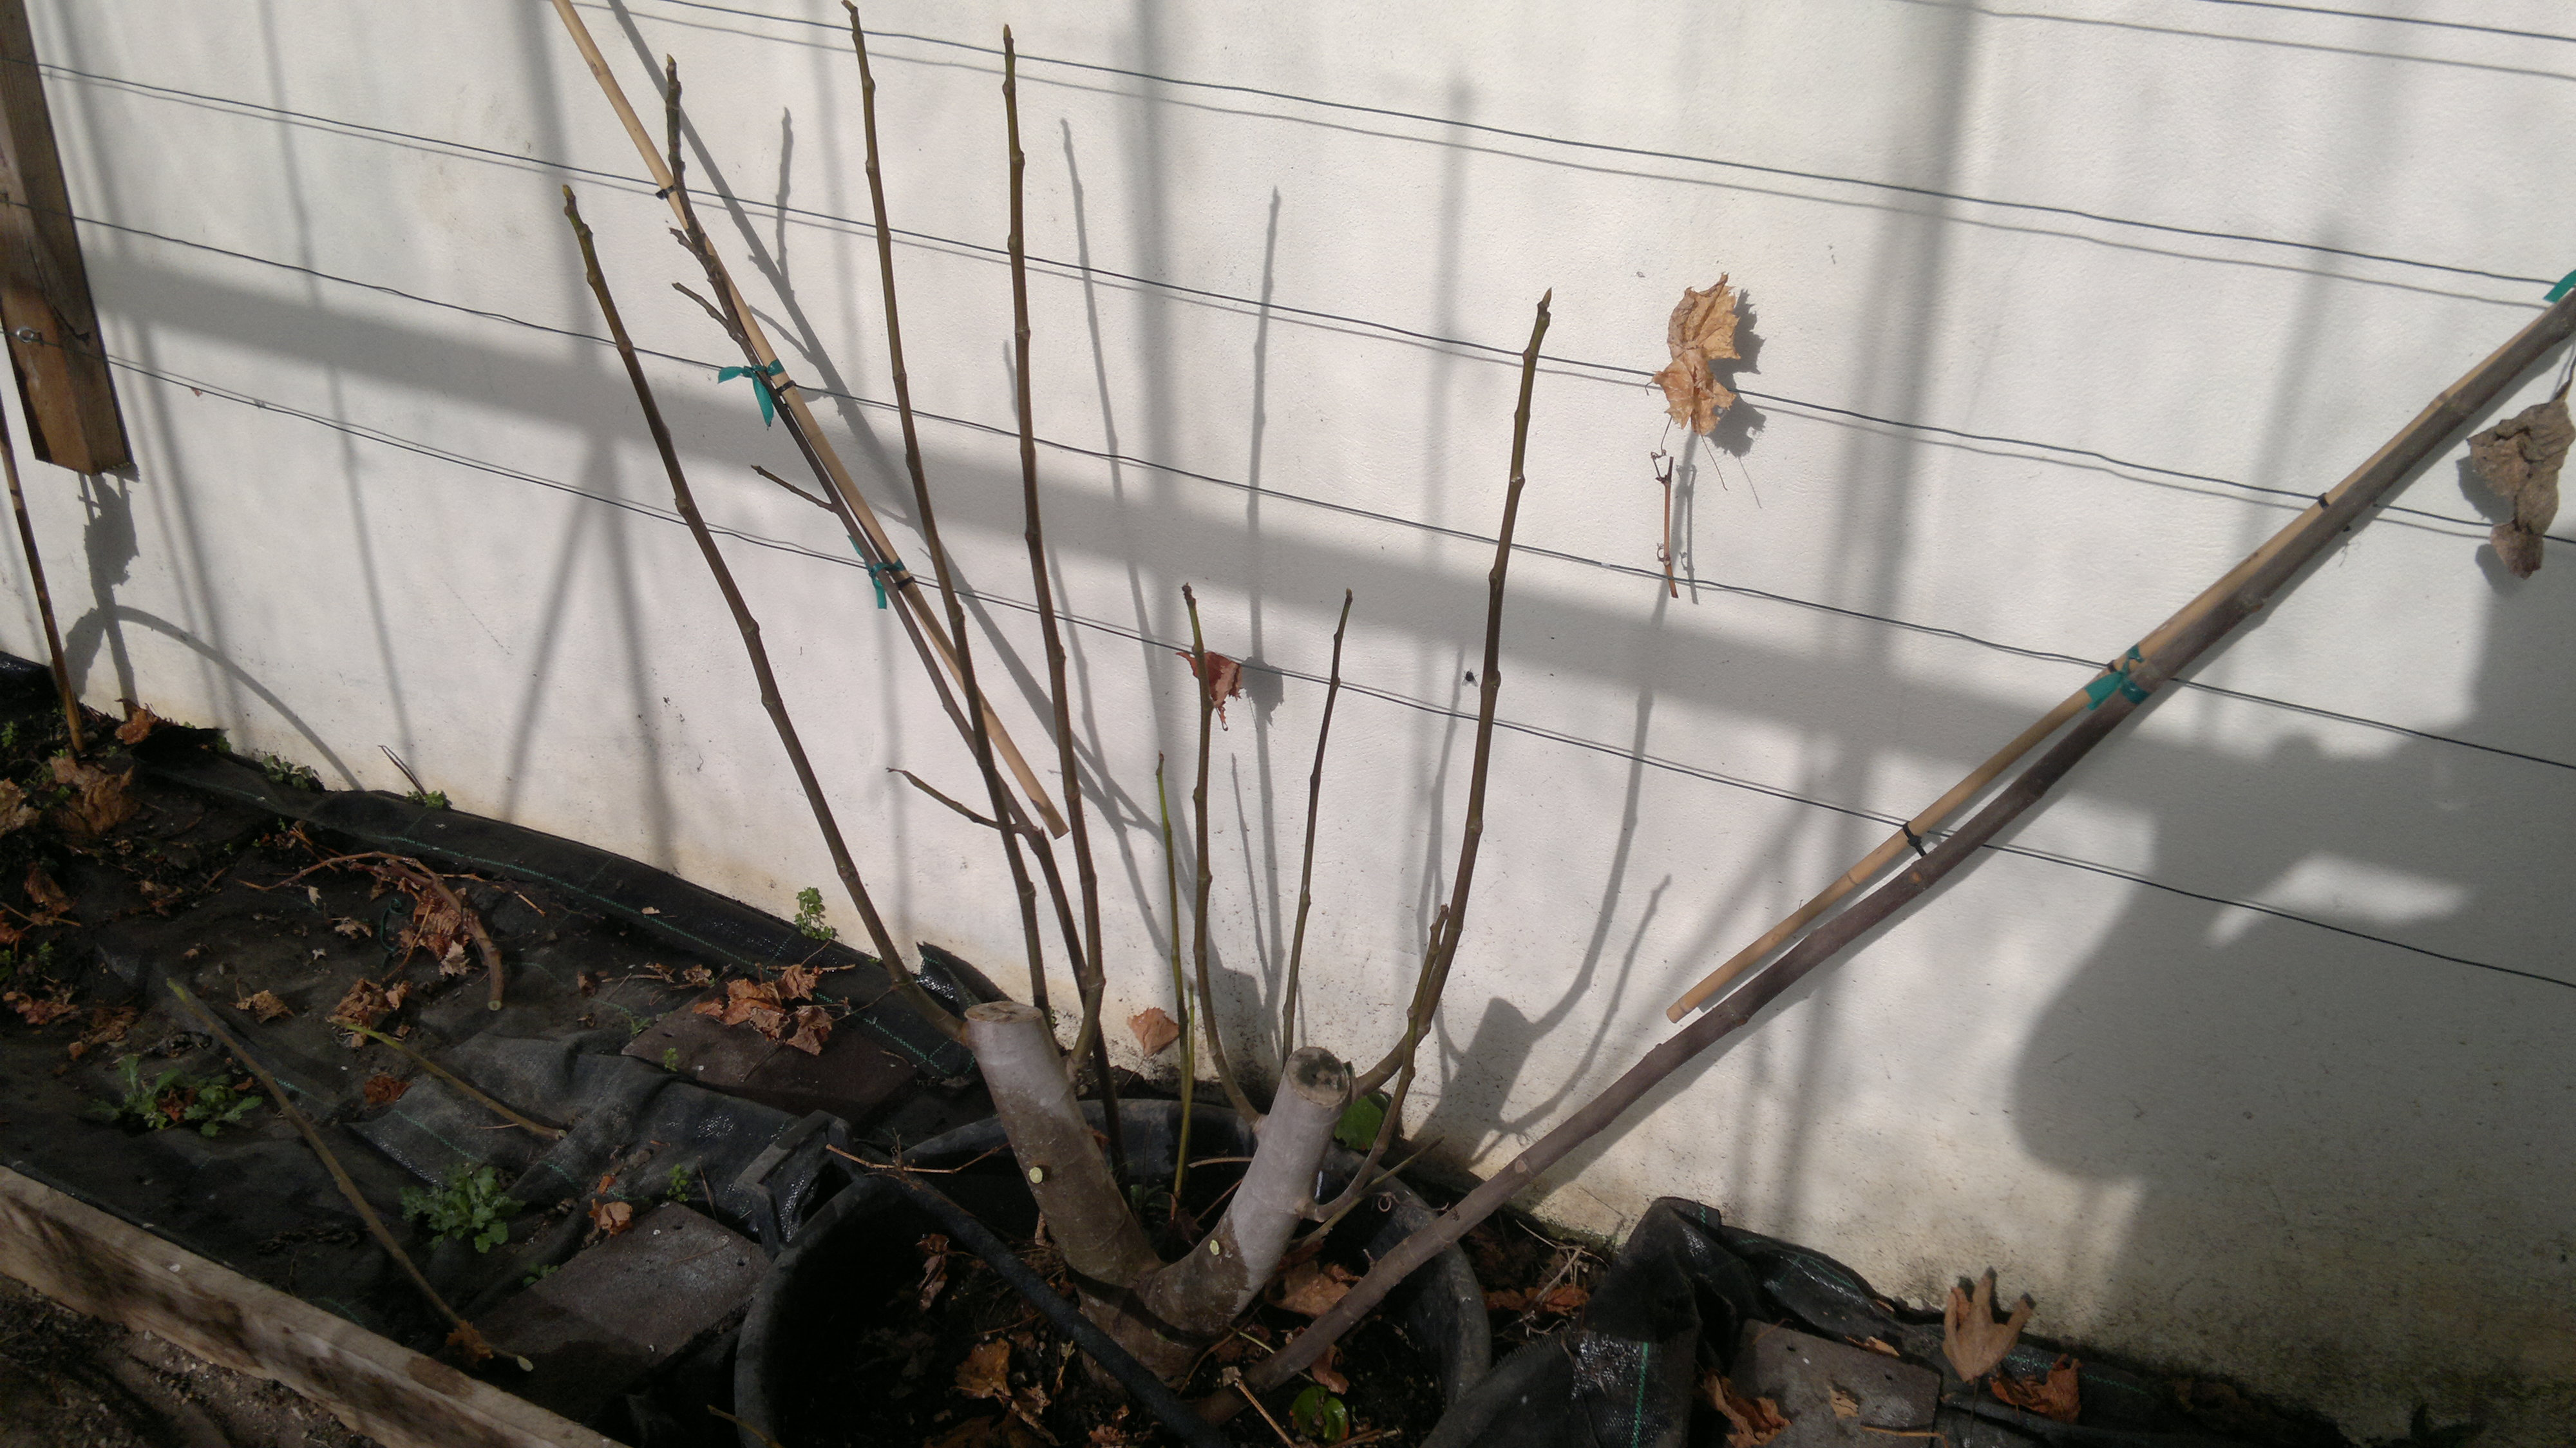 New growth to be tied in on the Brogiotto Bianco fig